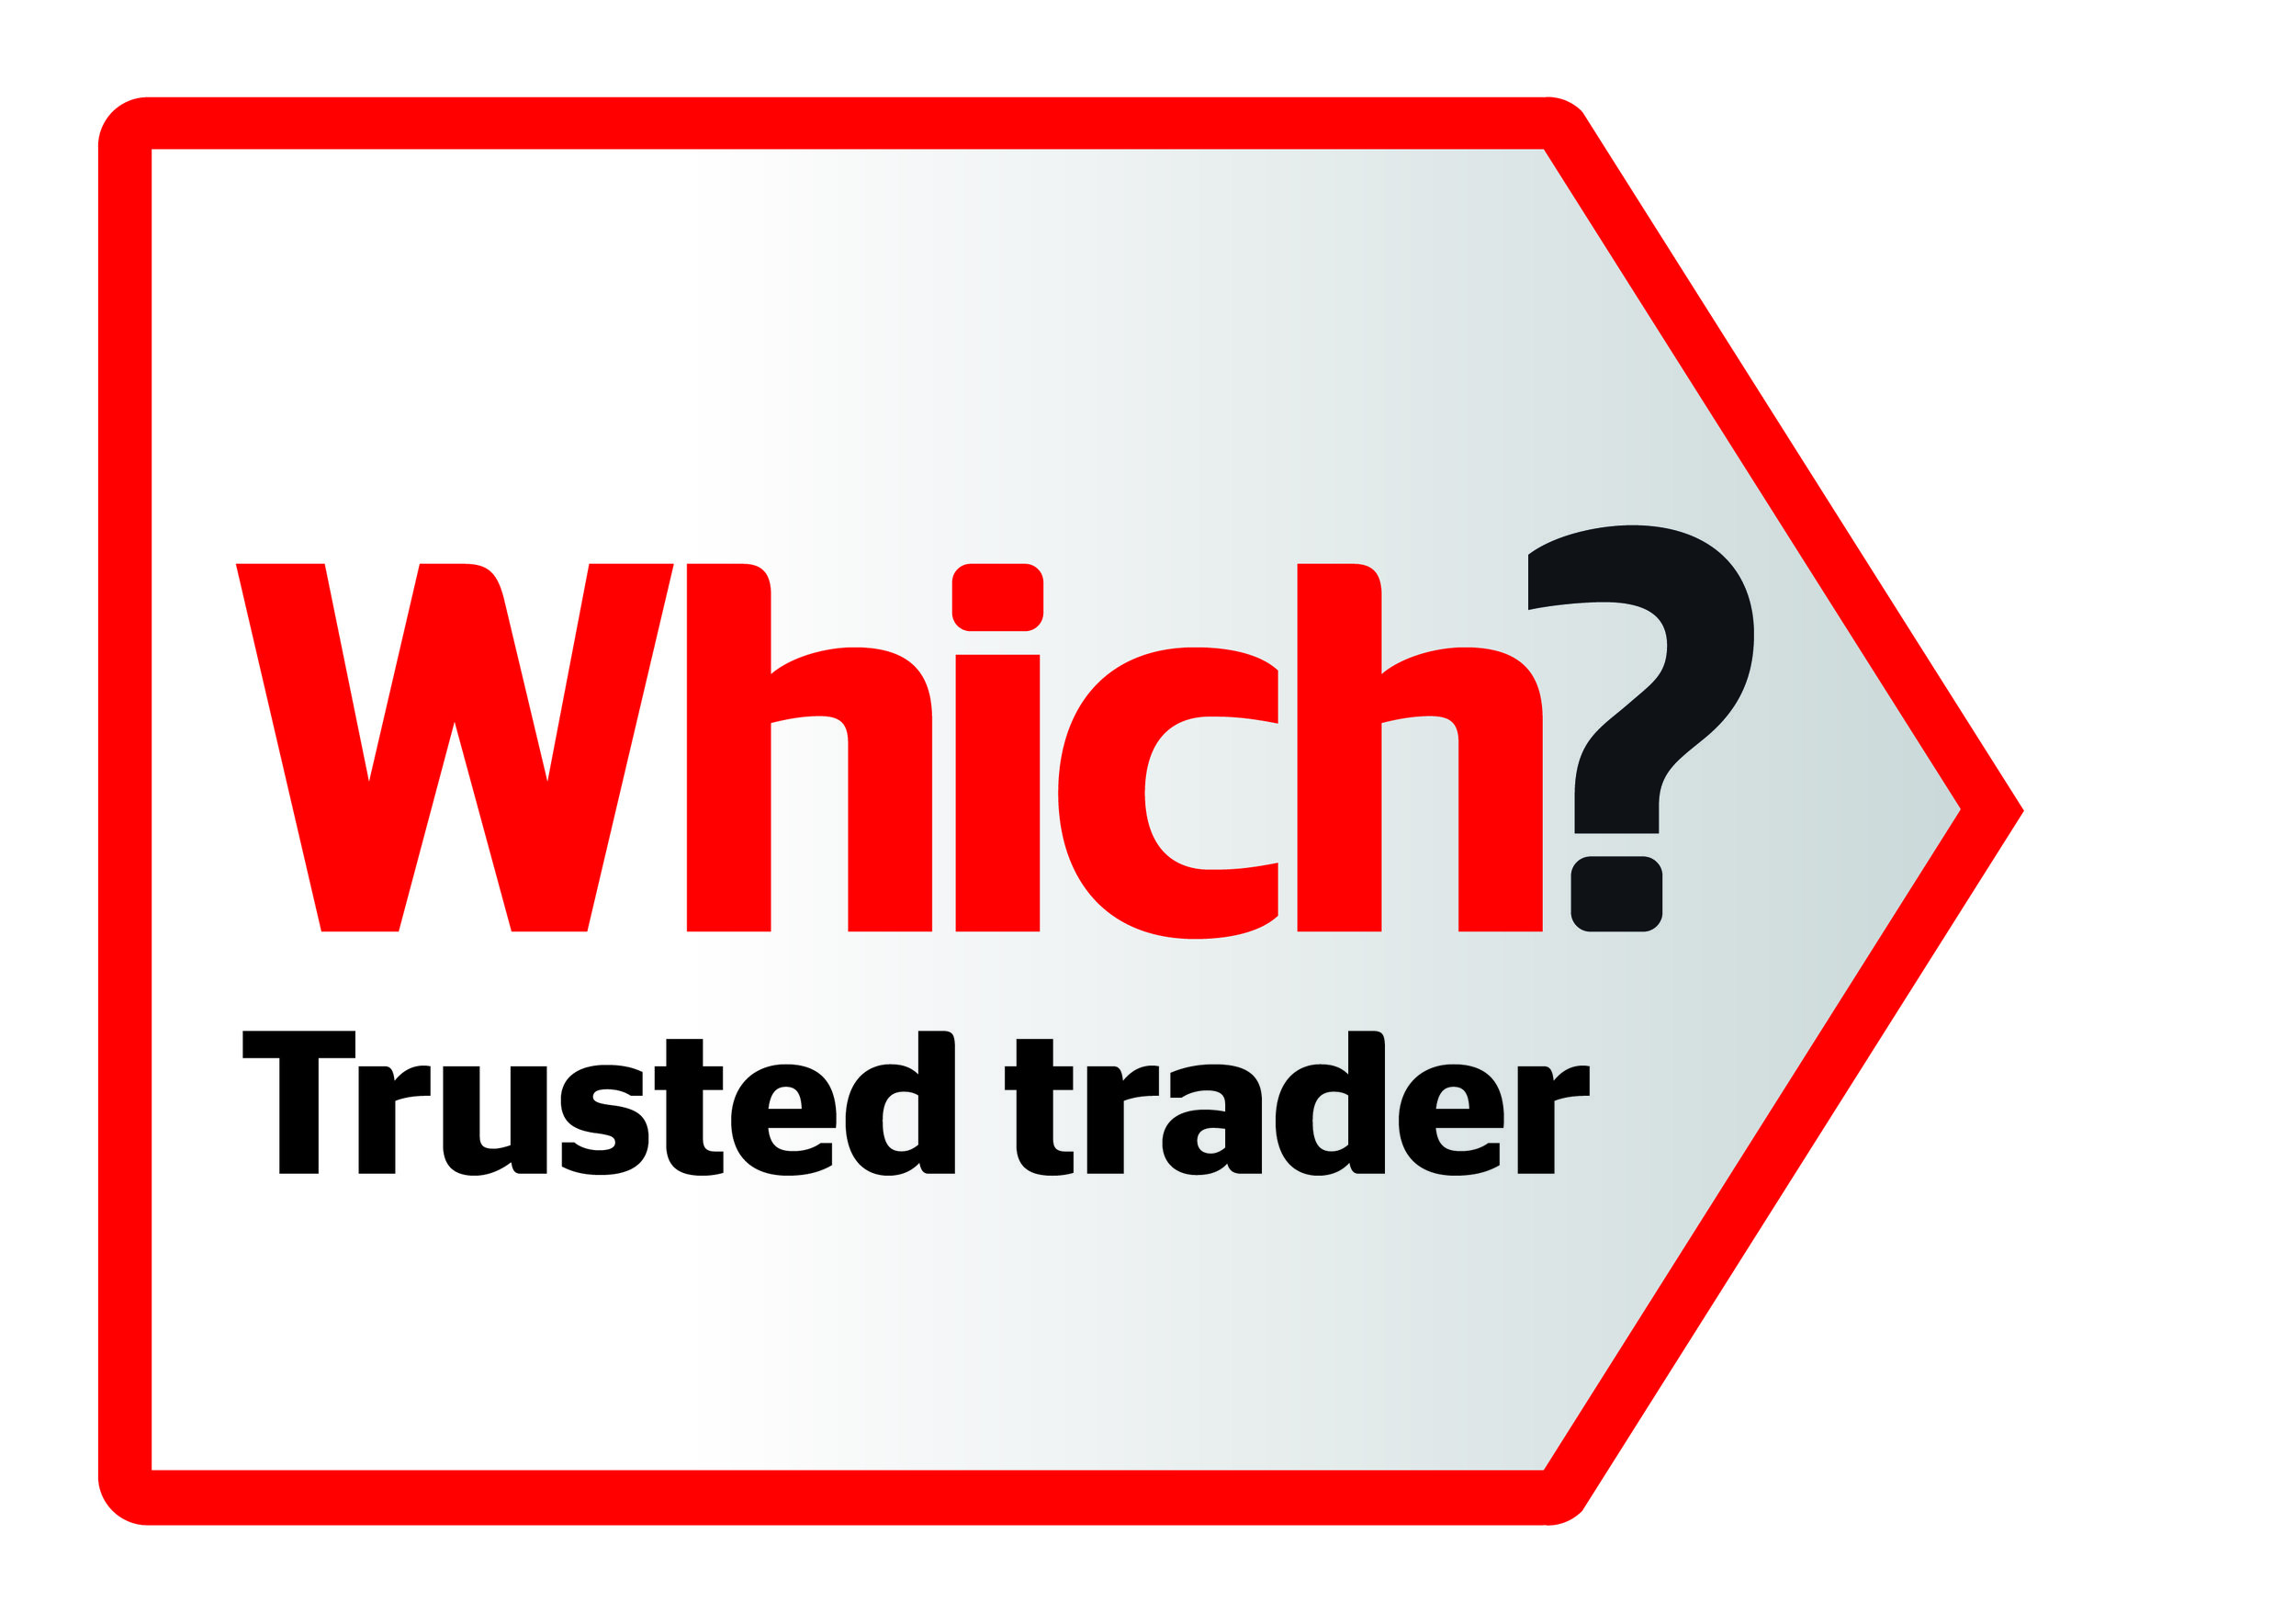 We are proud to be a Which Trusted Trader.   Please click the logo to see our profile and read our reviews.